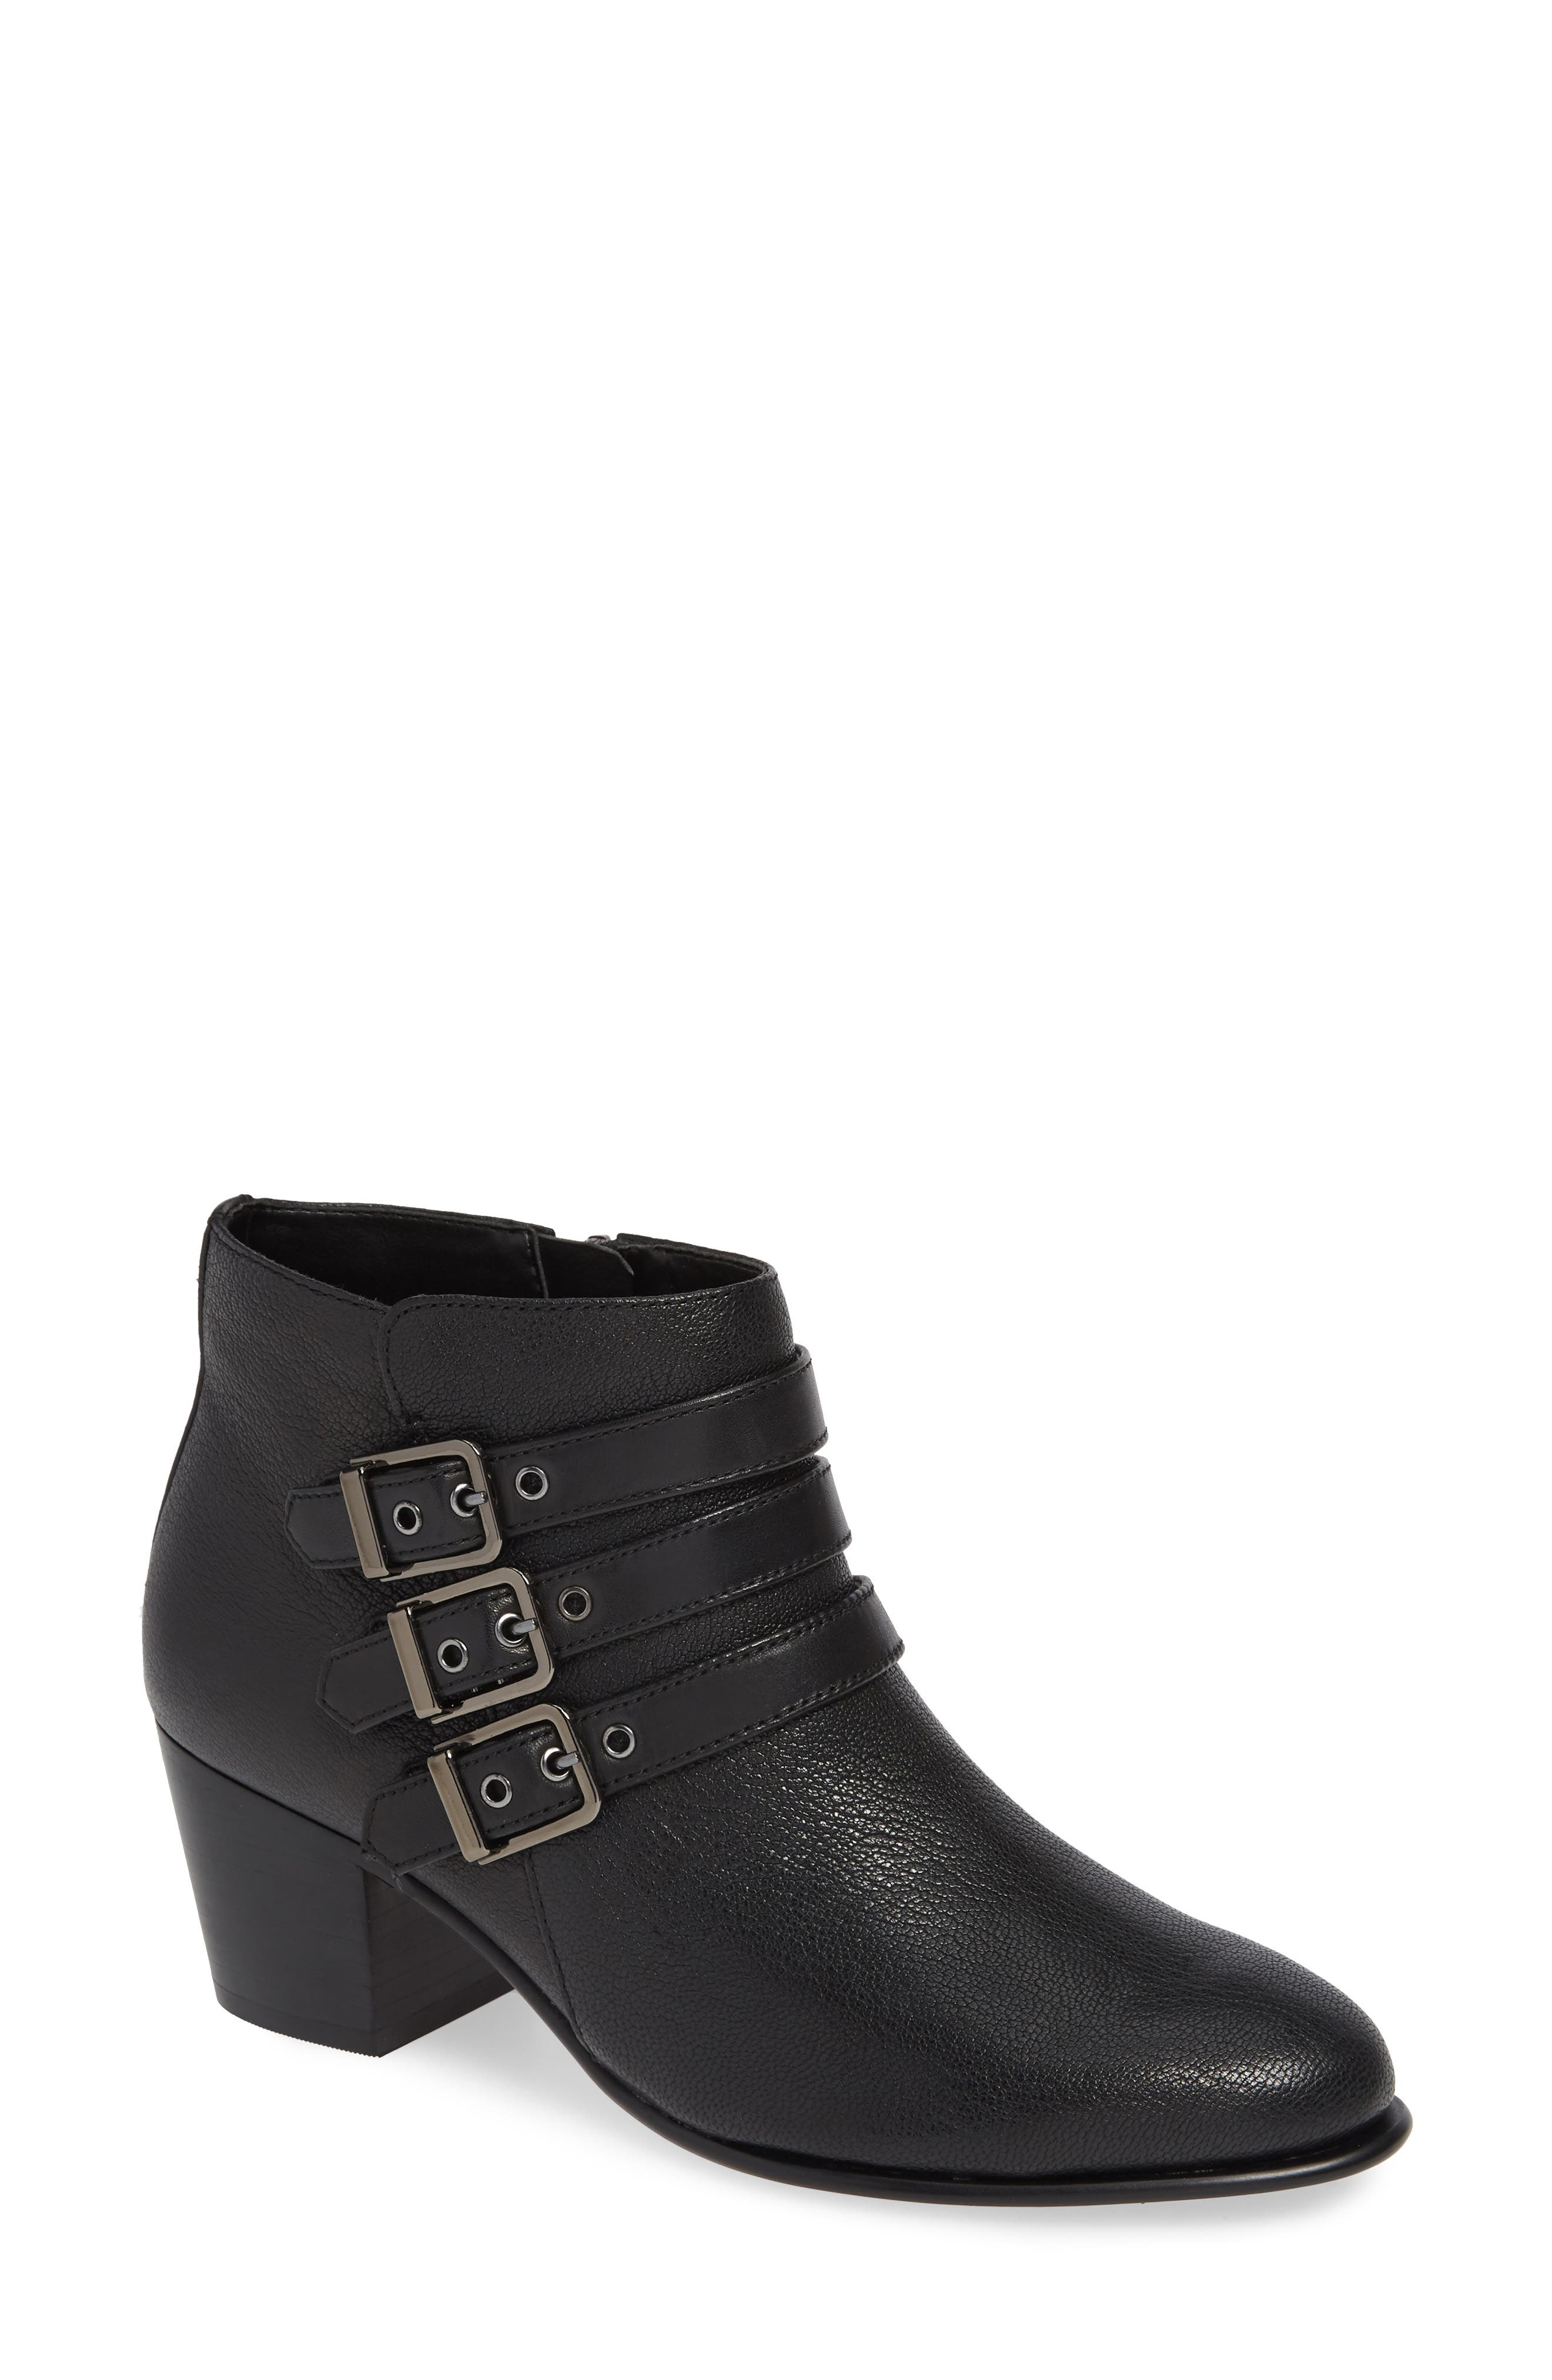 Maypearl Rayna Boot,                         Main,                         color, BLACK TUMBLED LEATHER